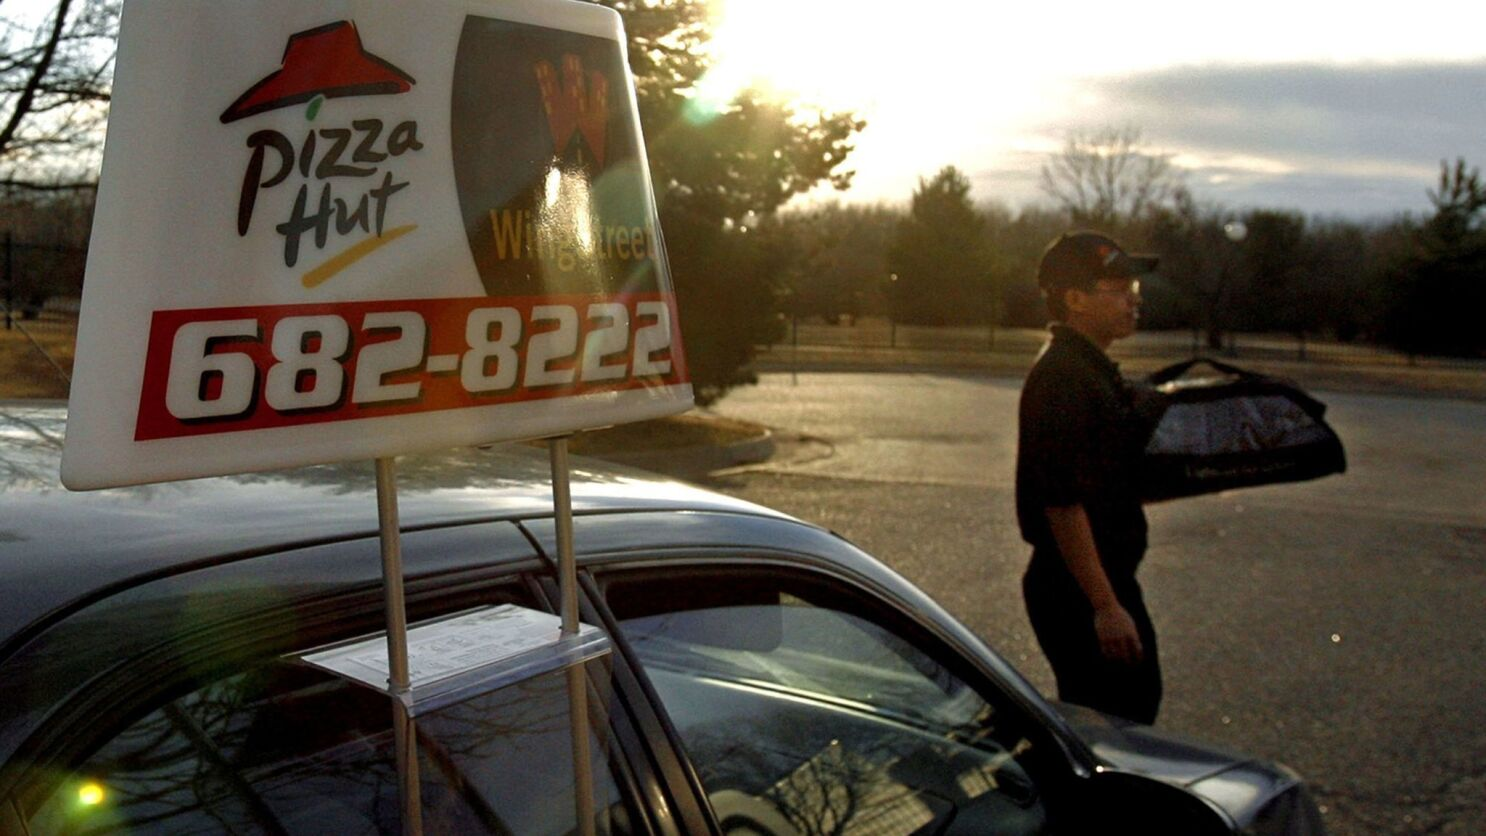 Pizza Hut Is The New Official Pizza Of The Nfl After Papa John S Slices Its Sponsorship Deal Los Angeles Times